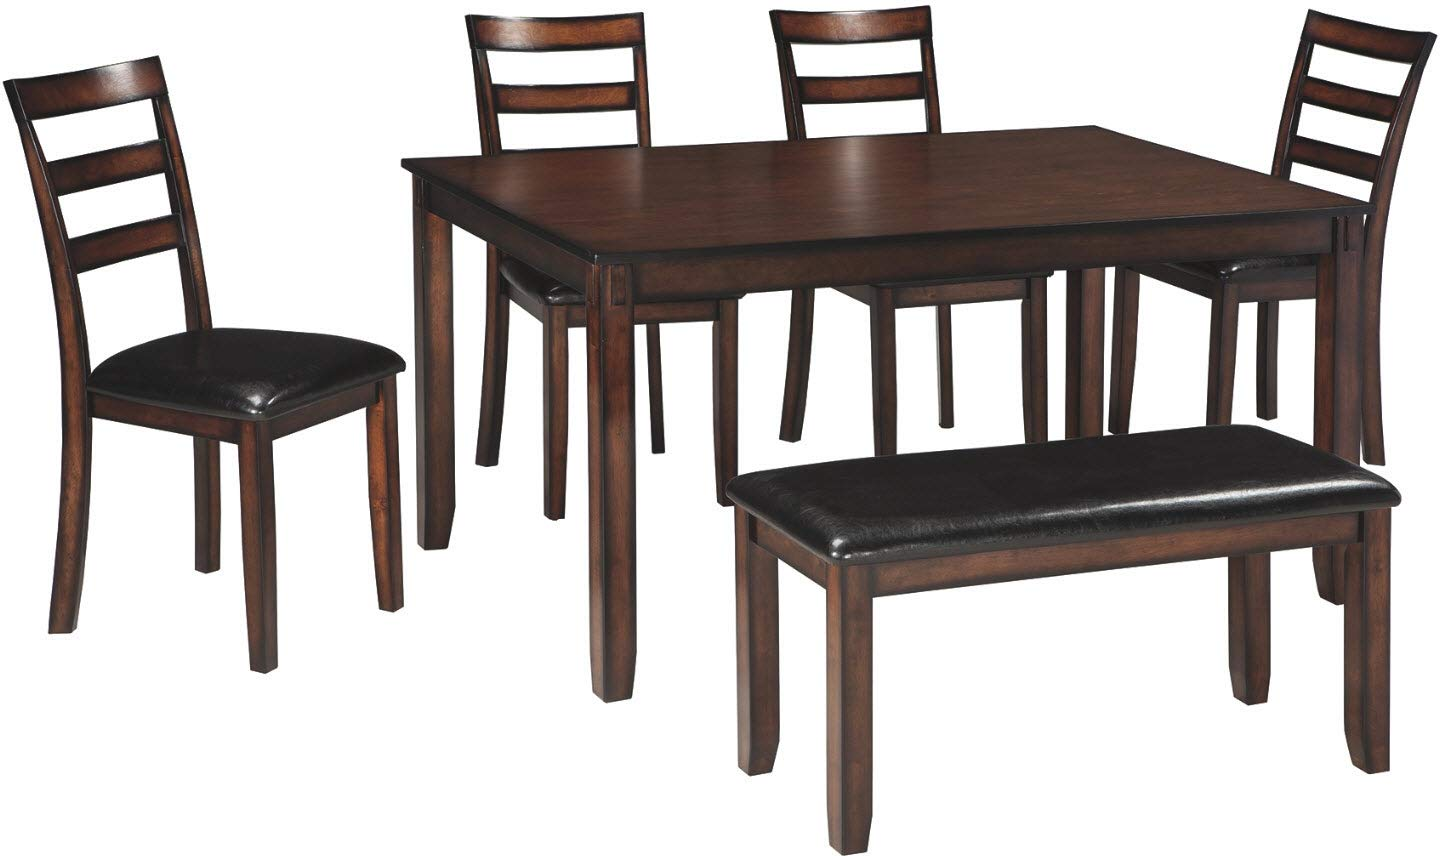 Ashley Furniture Signature Design - Coviar Dining Room Table and Chairs with Bench (Set of 6) - Brown by Signature Design by Ashley